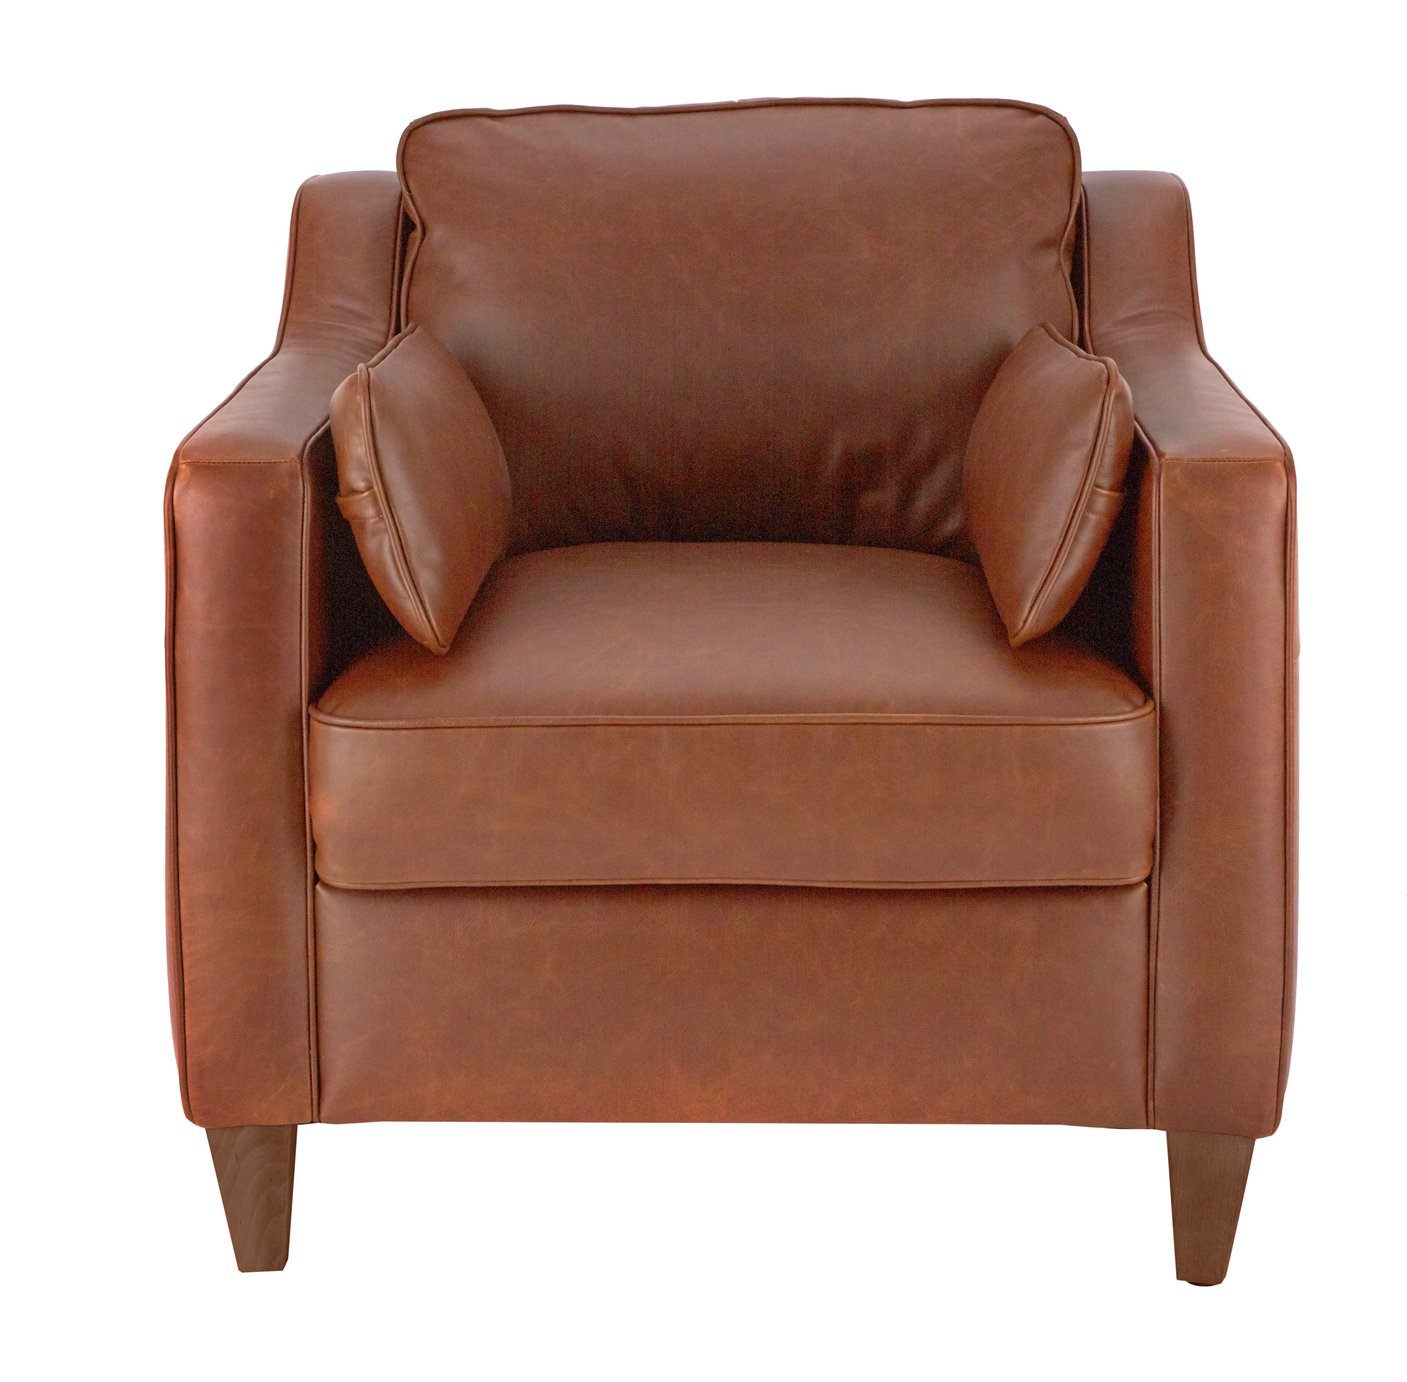 Argos Home Drury Lane Leather Armchair - Tan